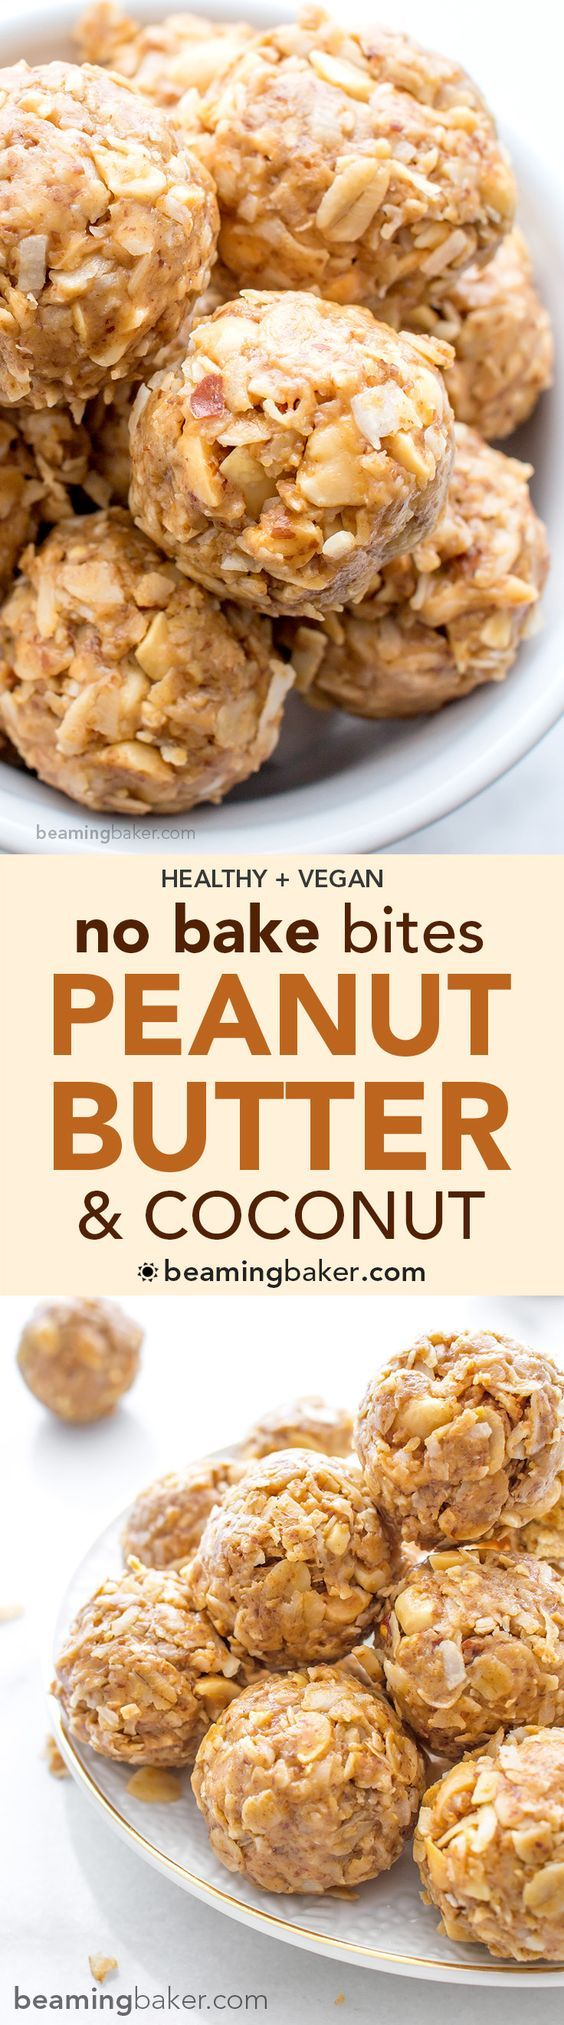 No Bake Peanut Butter Coconut Bites: delicious easy to make energy-boosting and super-filling. Made of just 6 simple ingredients vegan gluten free and healthy.